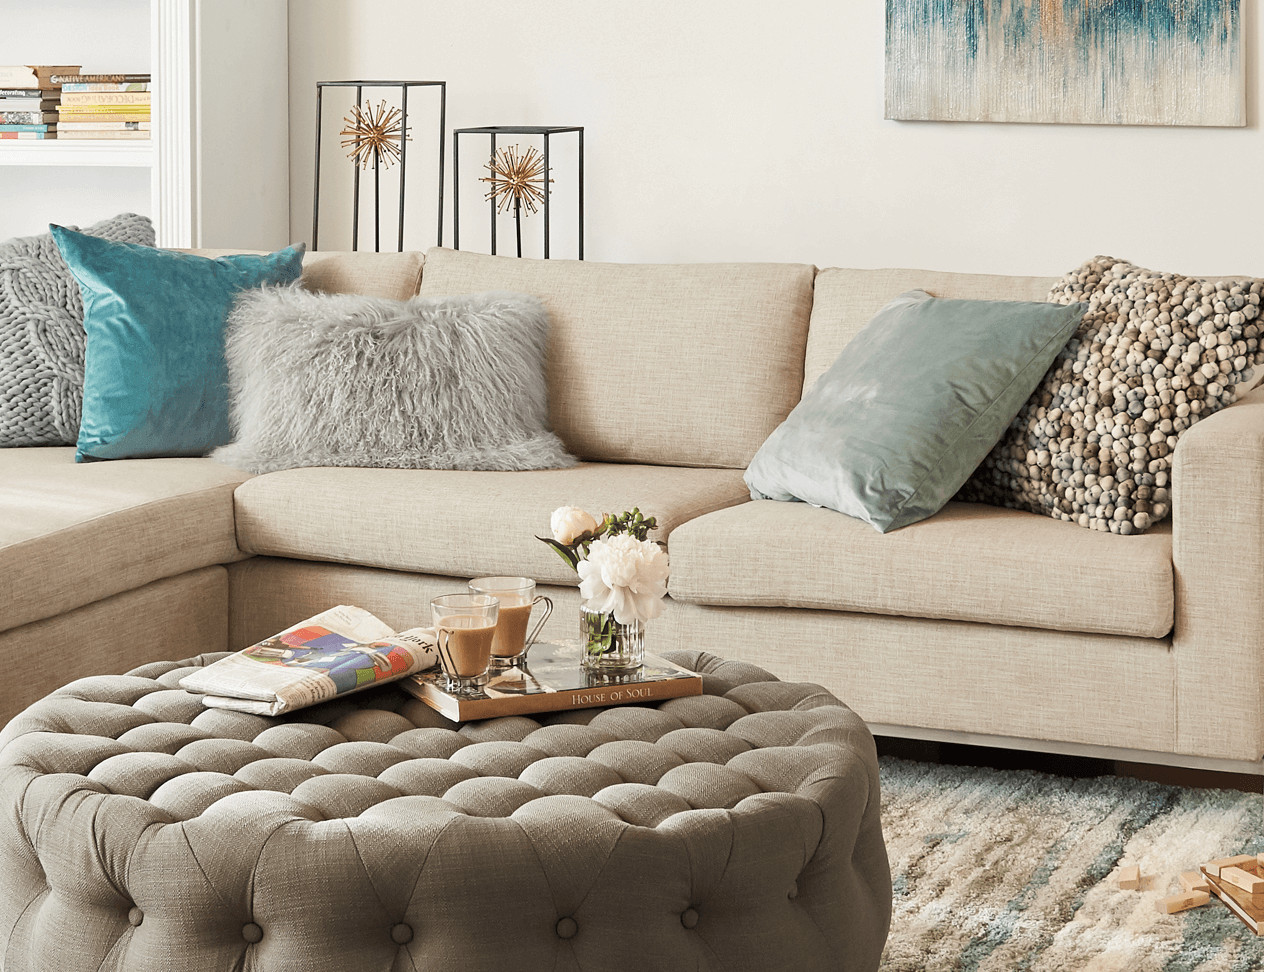 Furniture Buying Guide: Sofas & Sectional | Bed Bath & Beyond